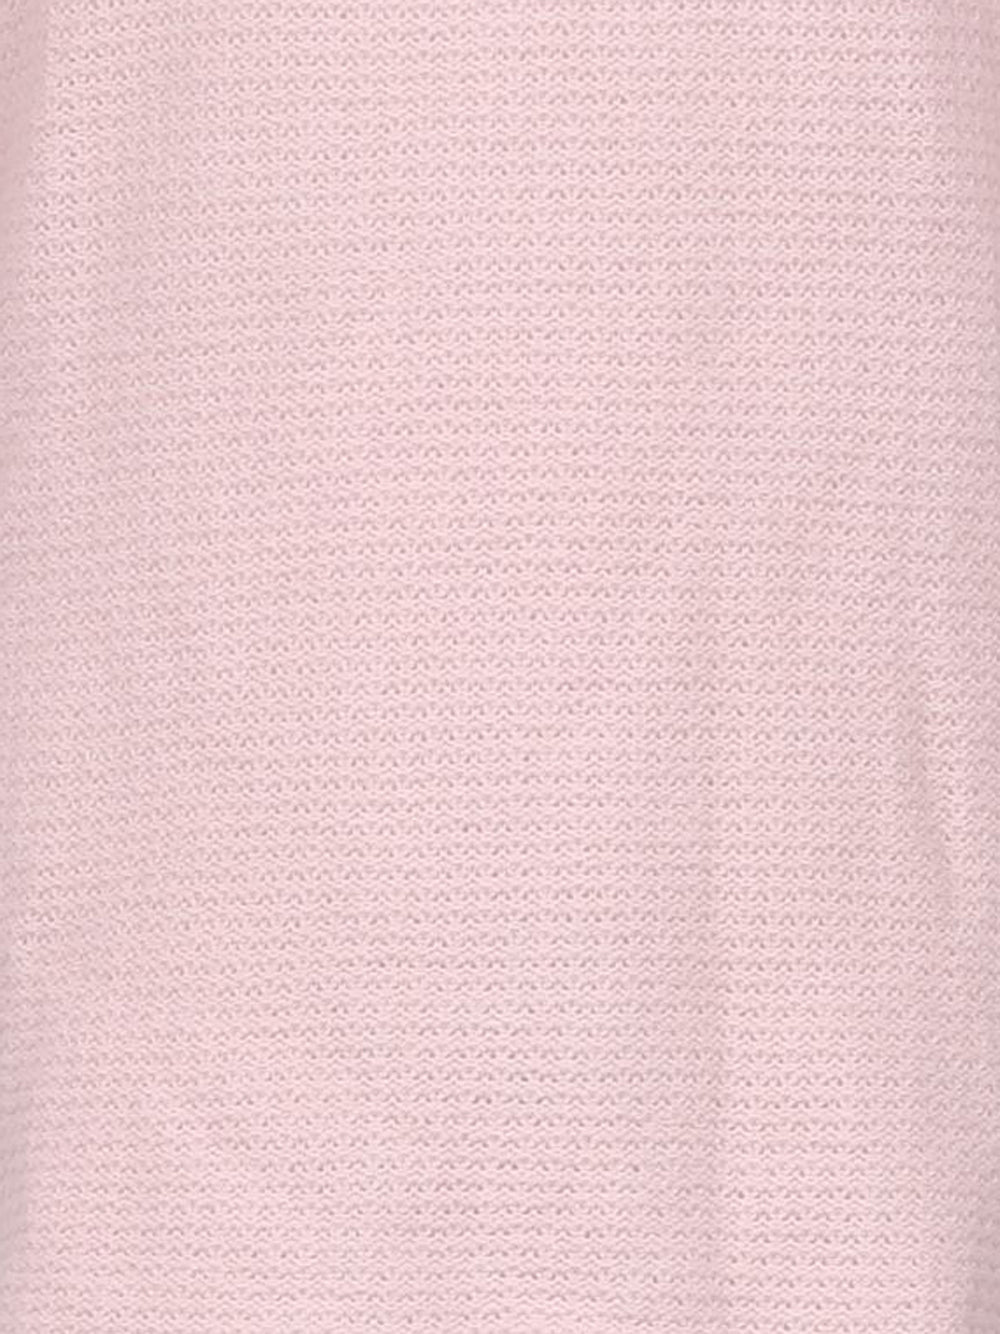 Detail photo of Preloved bsk Pink Woman's long sleeved shirt - size 12/L